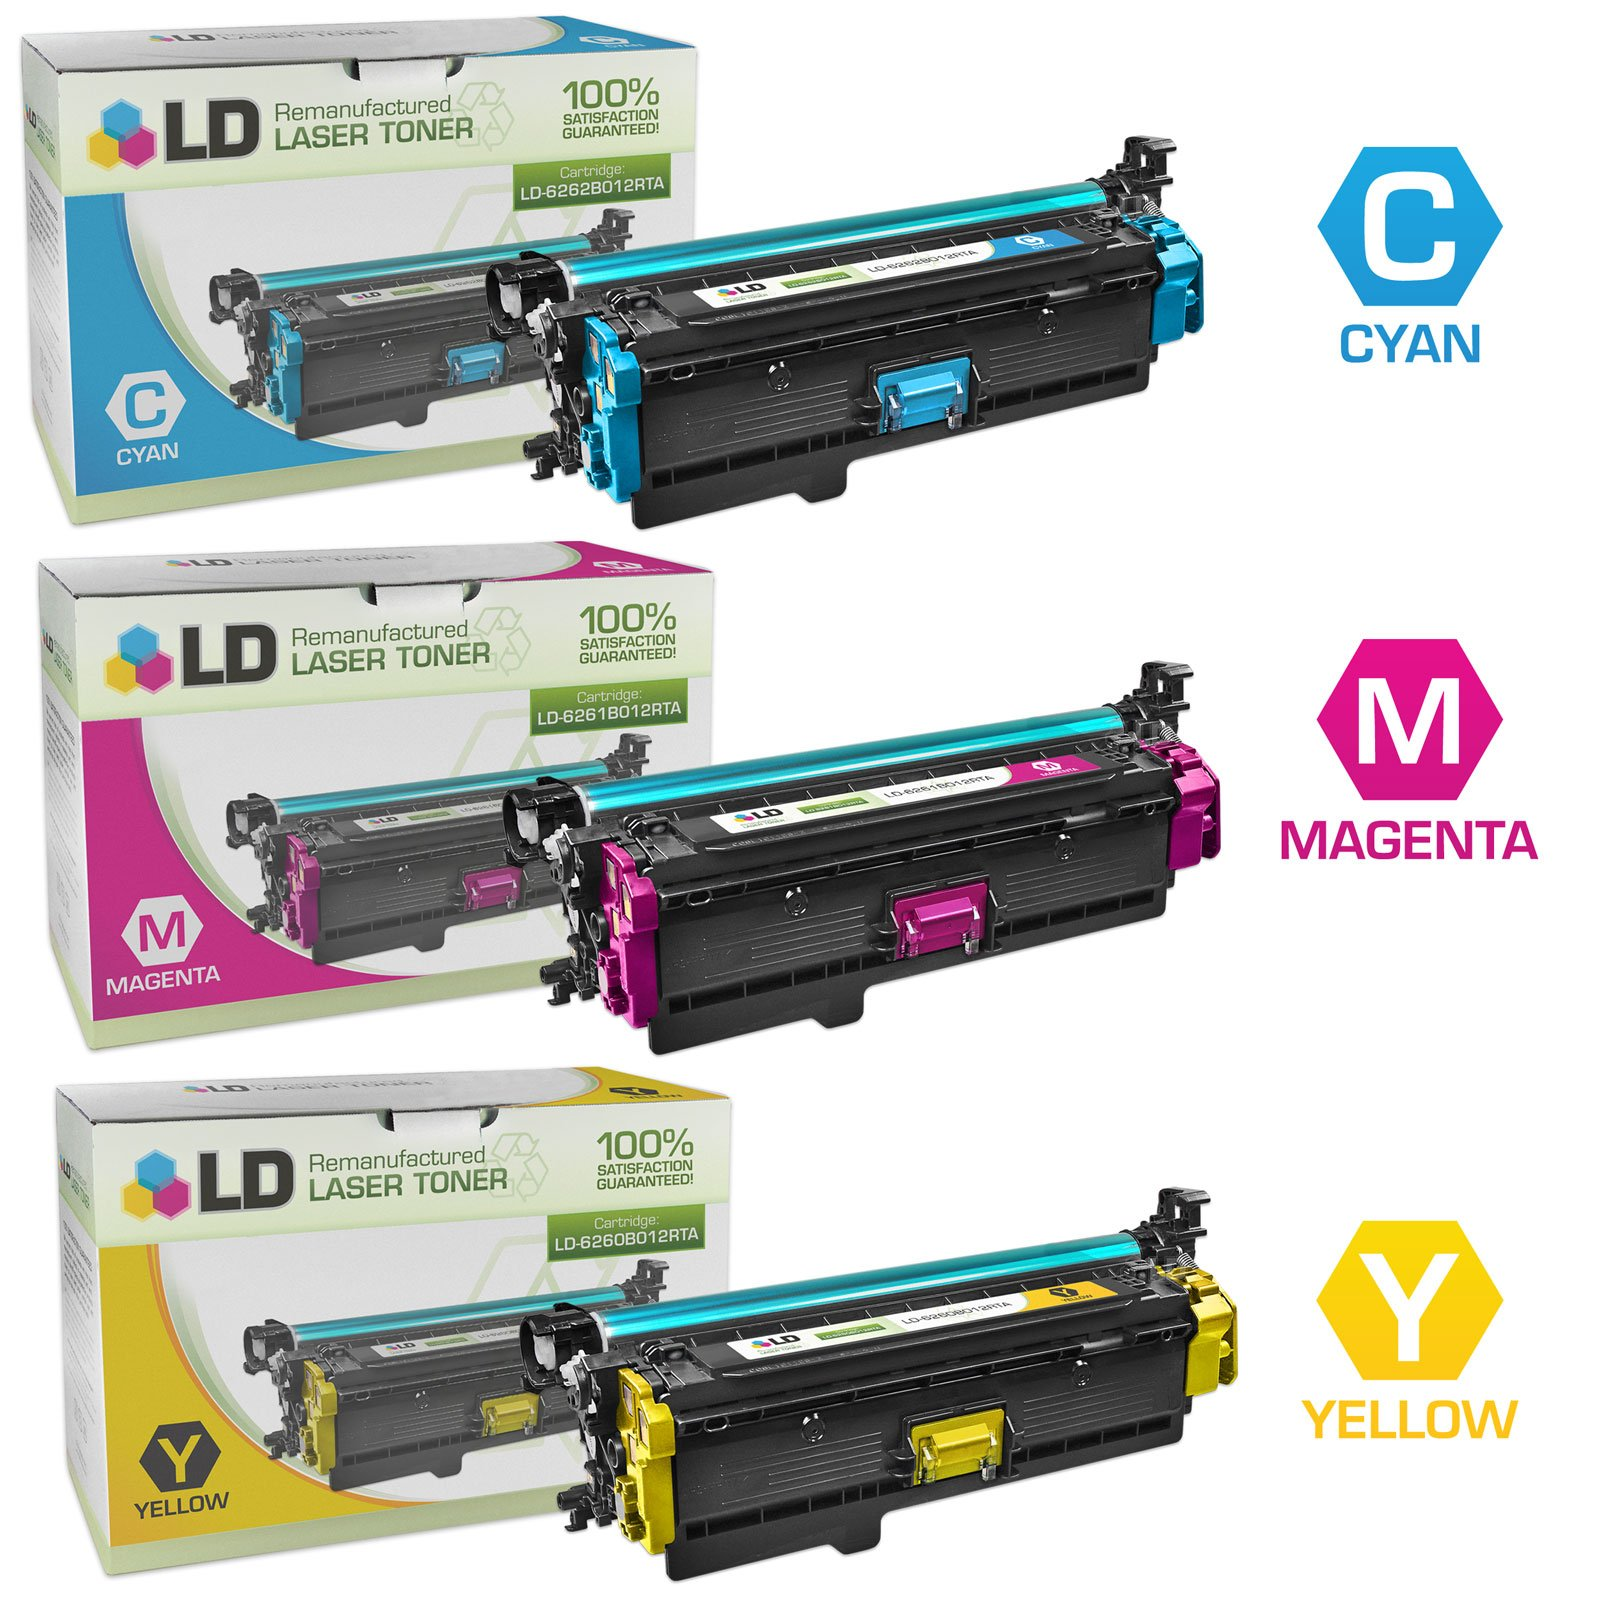 LD Remanufactured Toner Cartridge Replacements for Canon 332 (Cyan, Magenta, Yellow, 3-Pack)